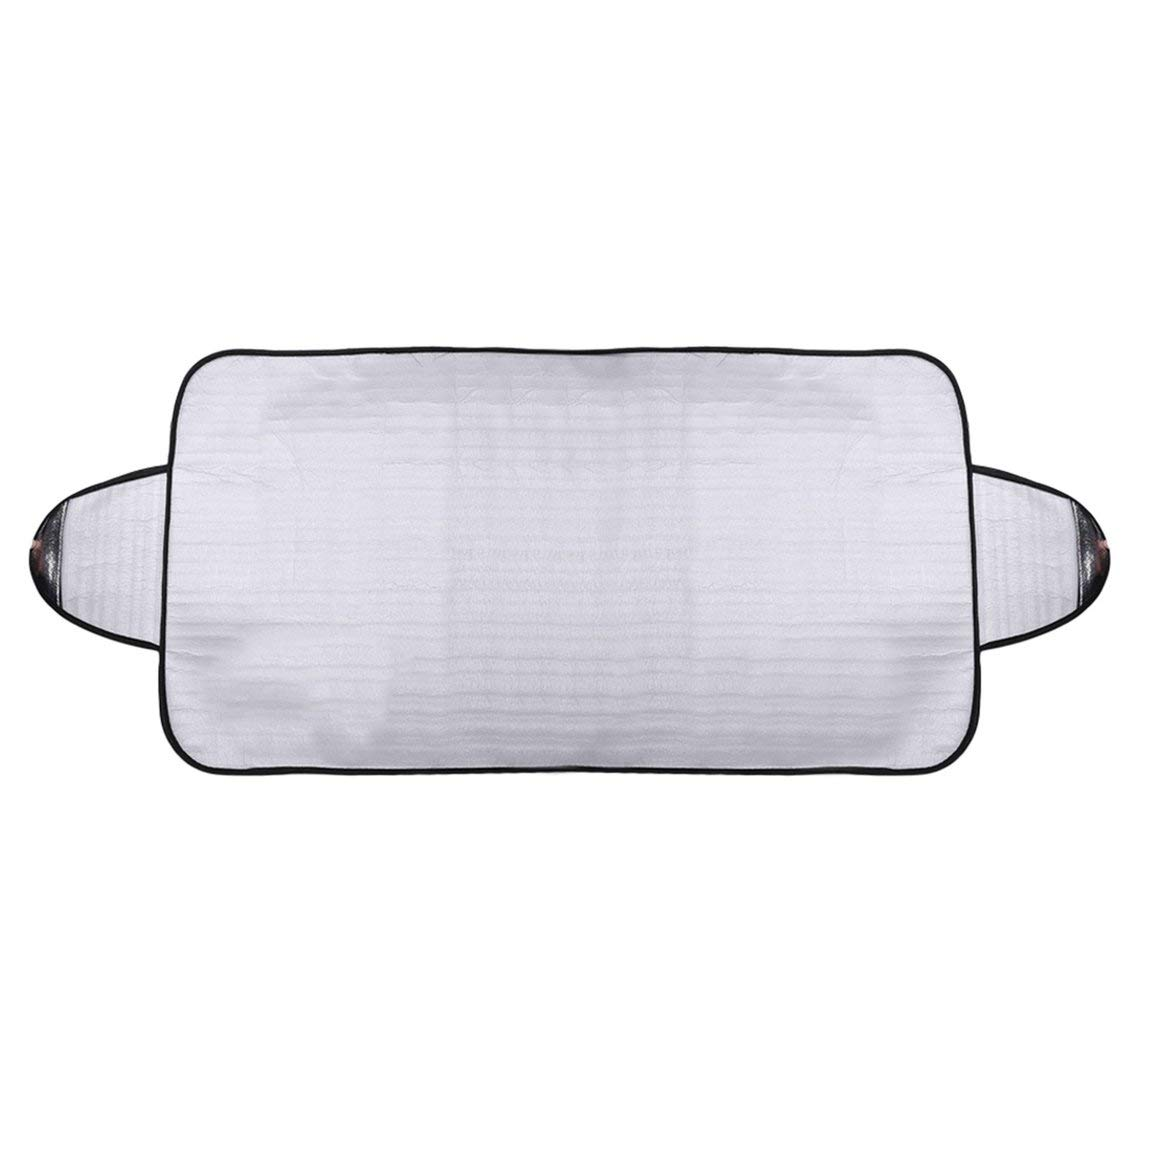 Funnyrunstore Practical Car Windscreen Cover Anti Ice Snow Frost Shield Dust Protection Heat Sun Shade Ideally for Front Car Windshield(Silver)